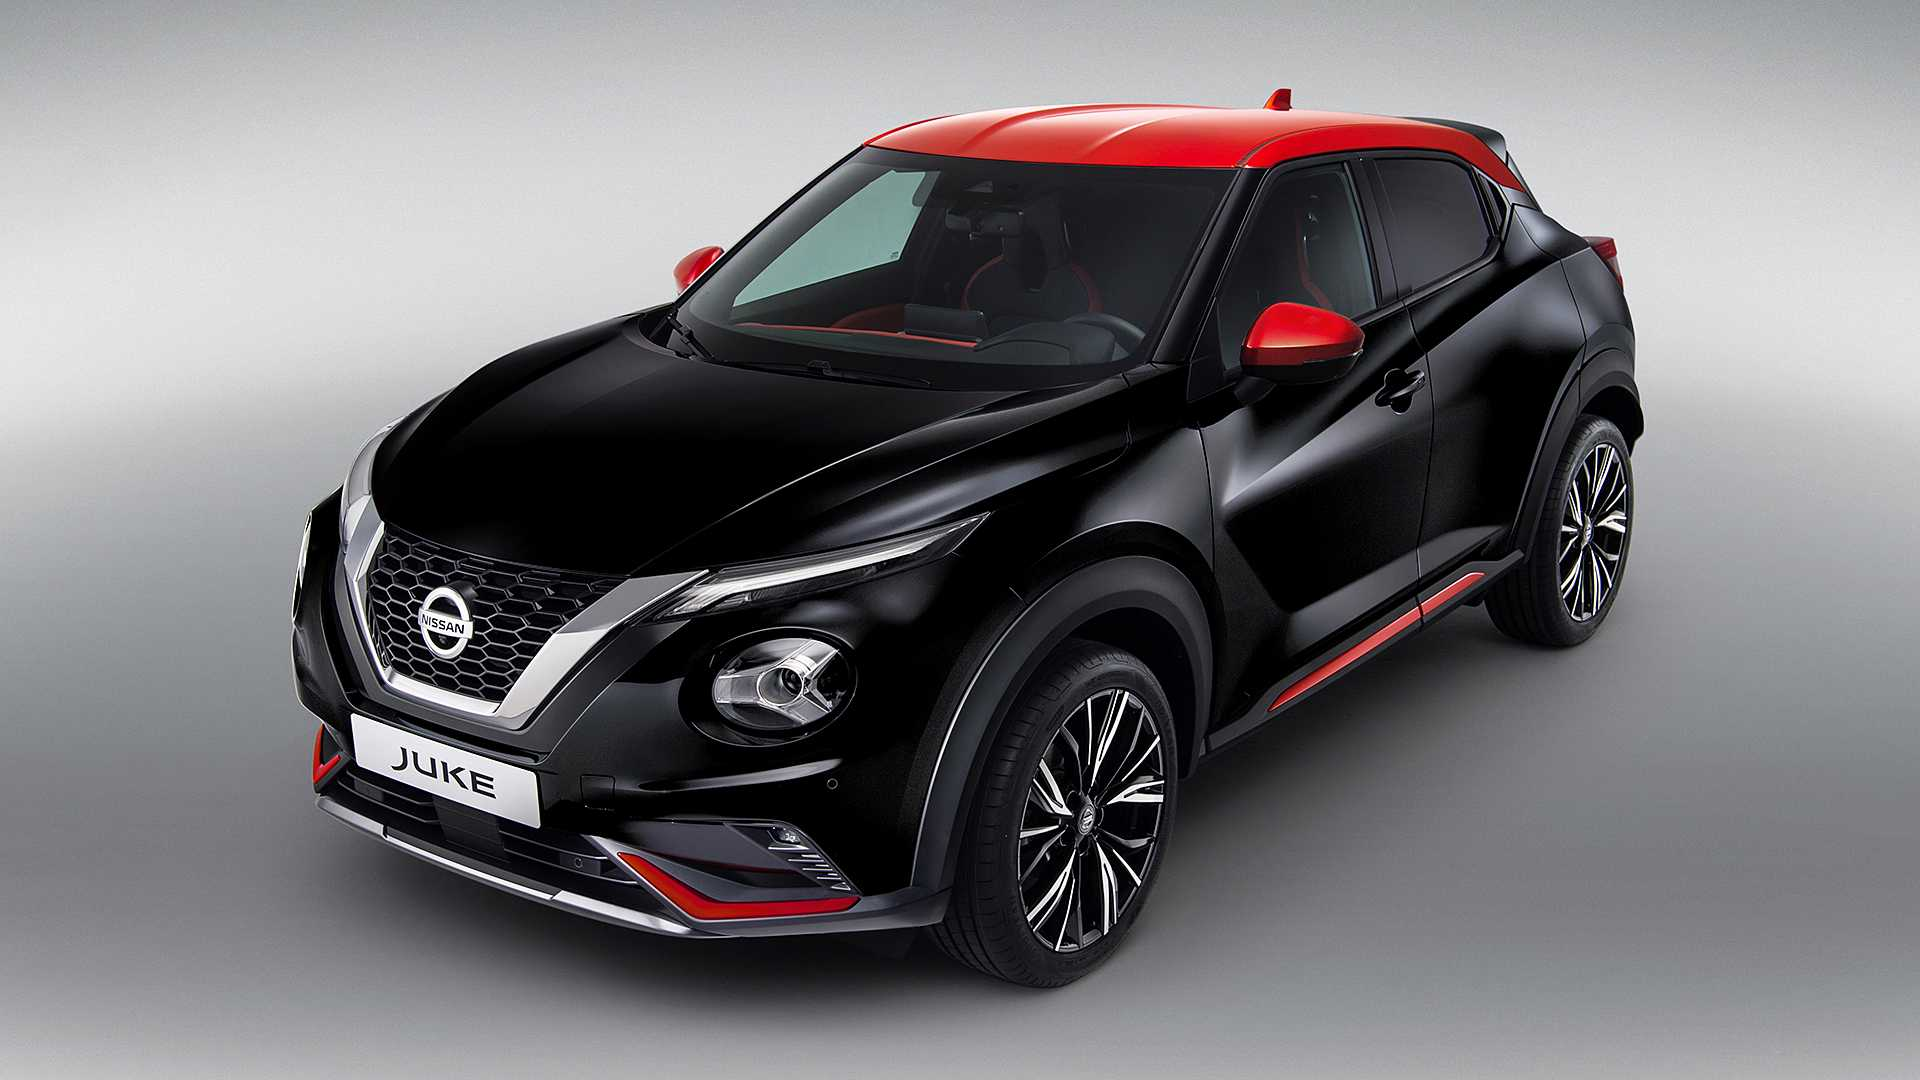 44 The Best Nissan Juke Nismo 2020 Release Date And Concept